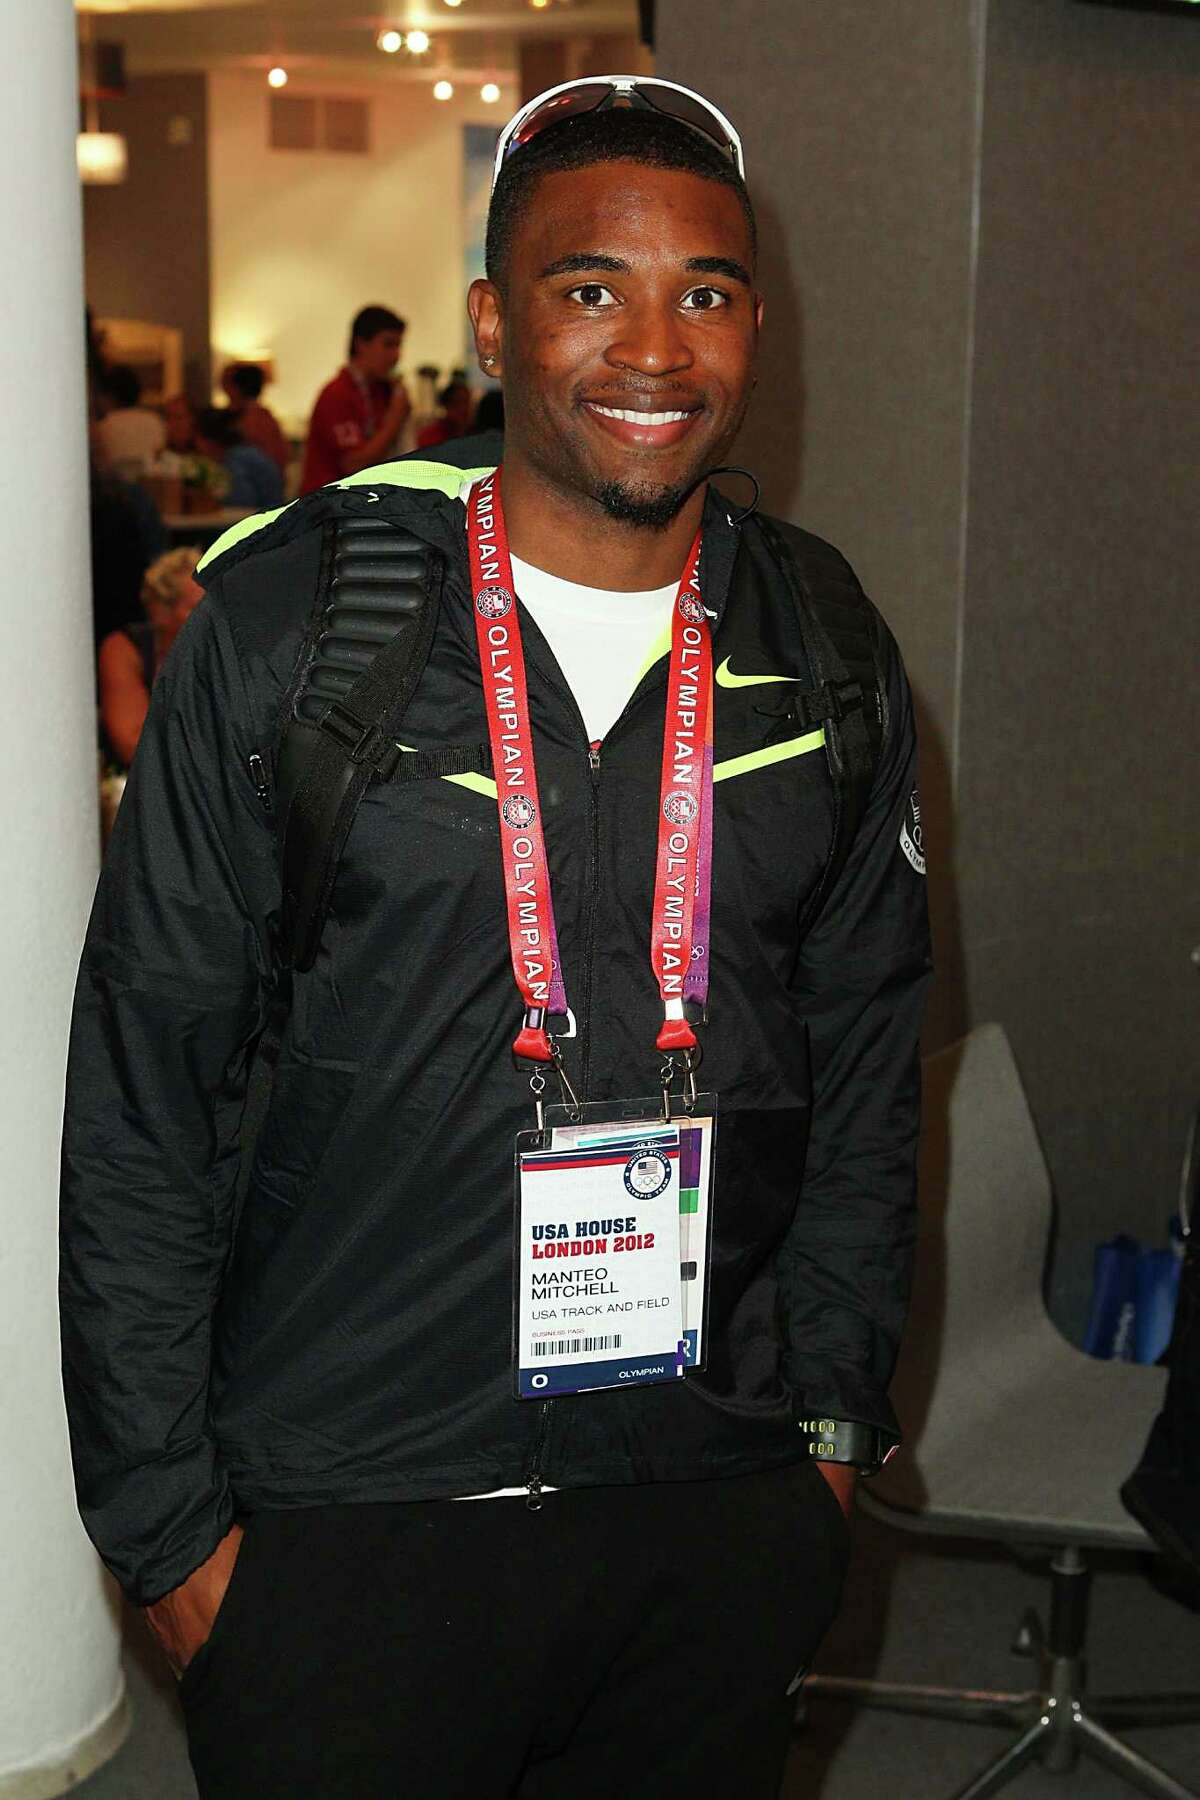 U.S. Olympian Manteo Mitchell visits the USA House at the Royal College of Art on Tuesday in London, England.